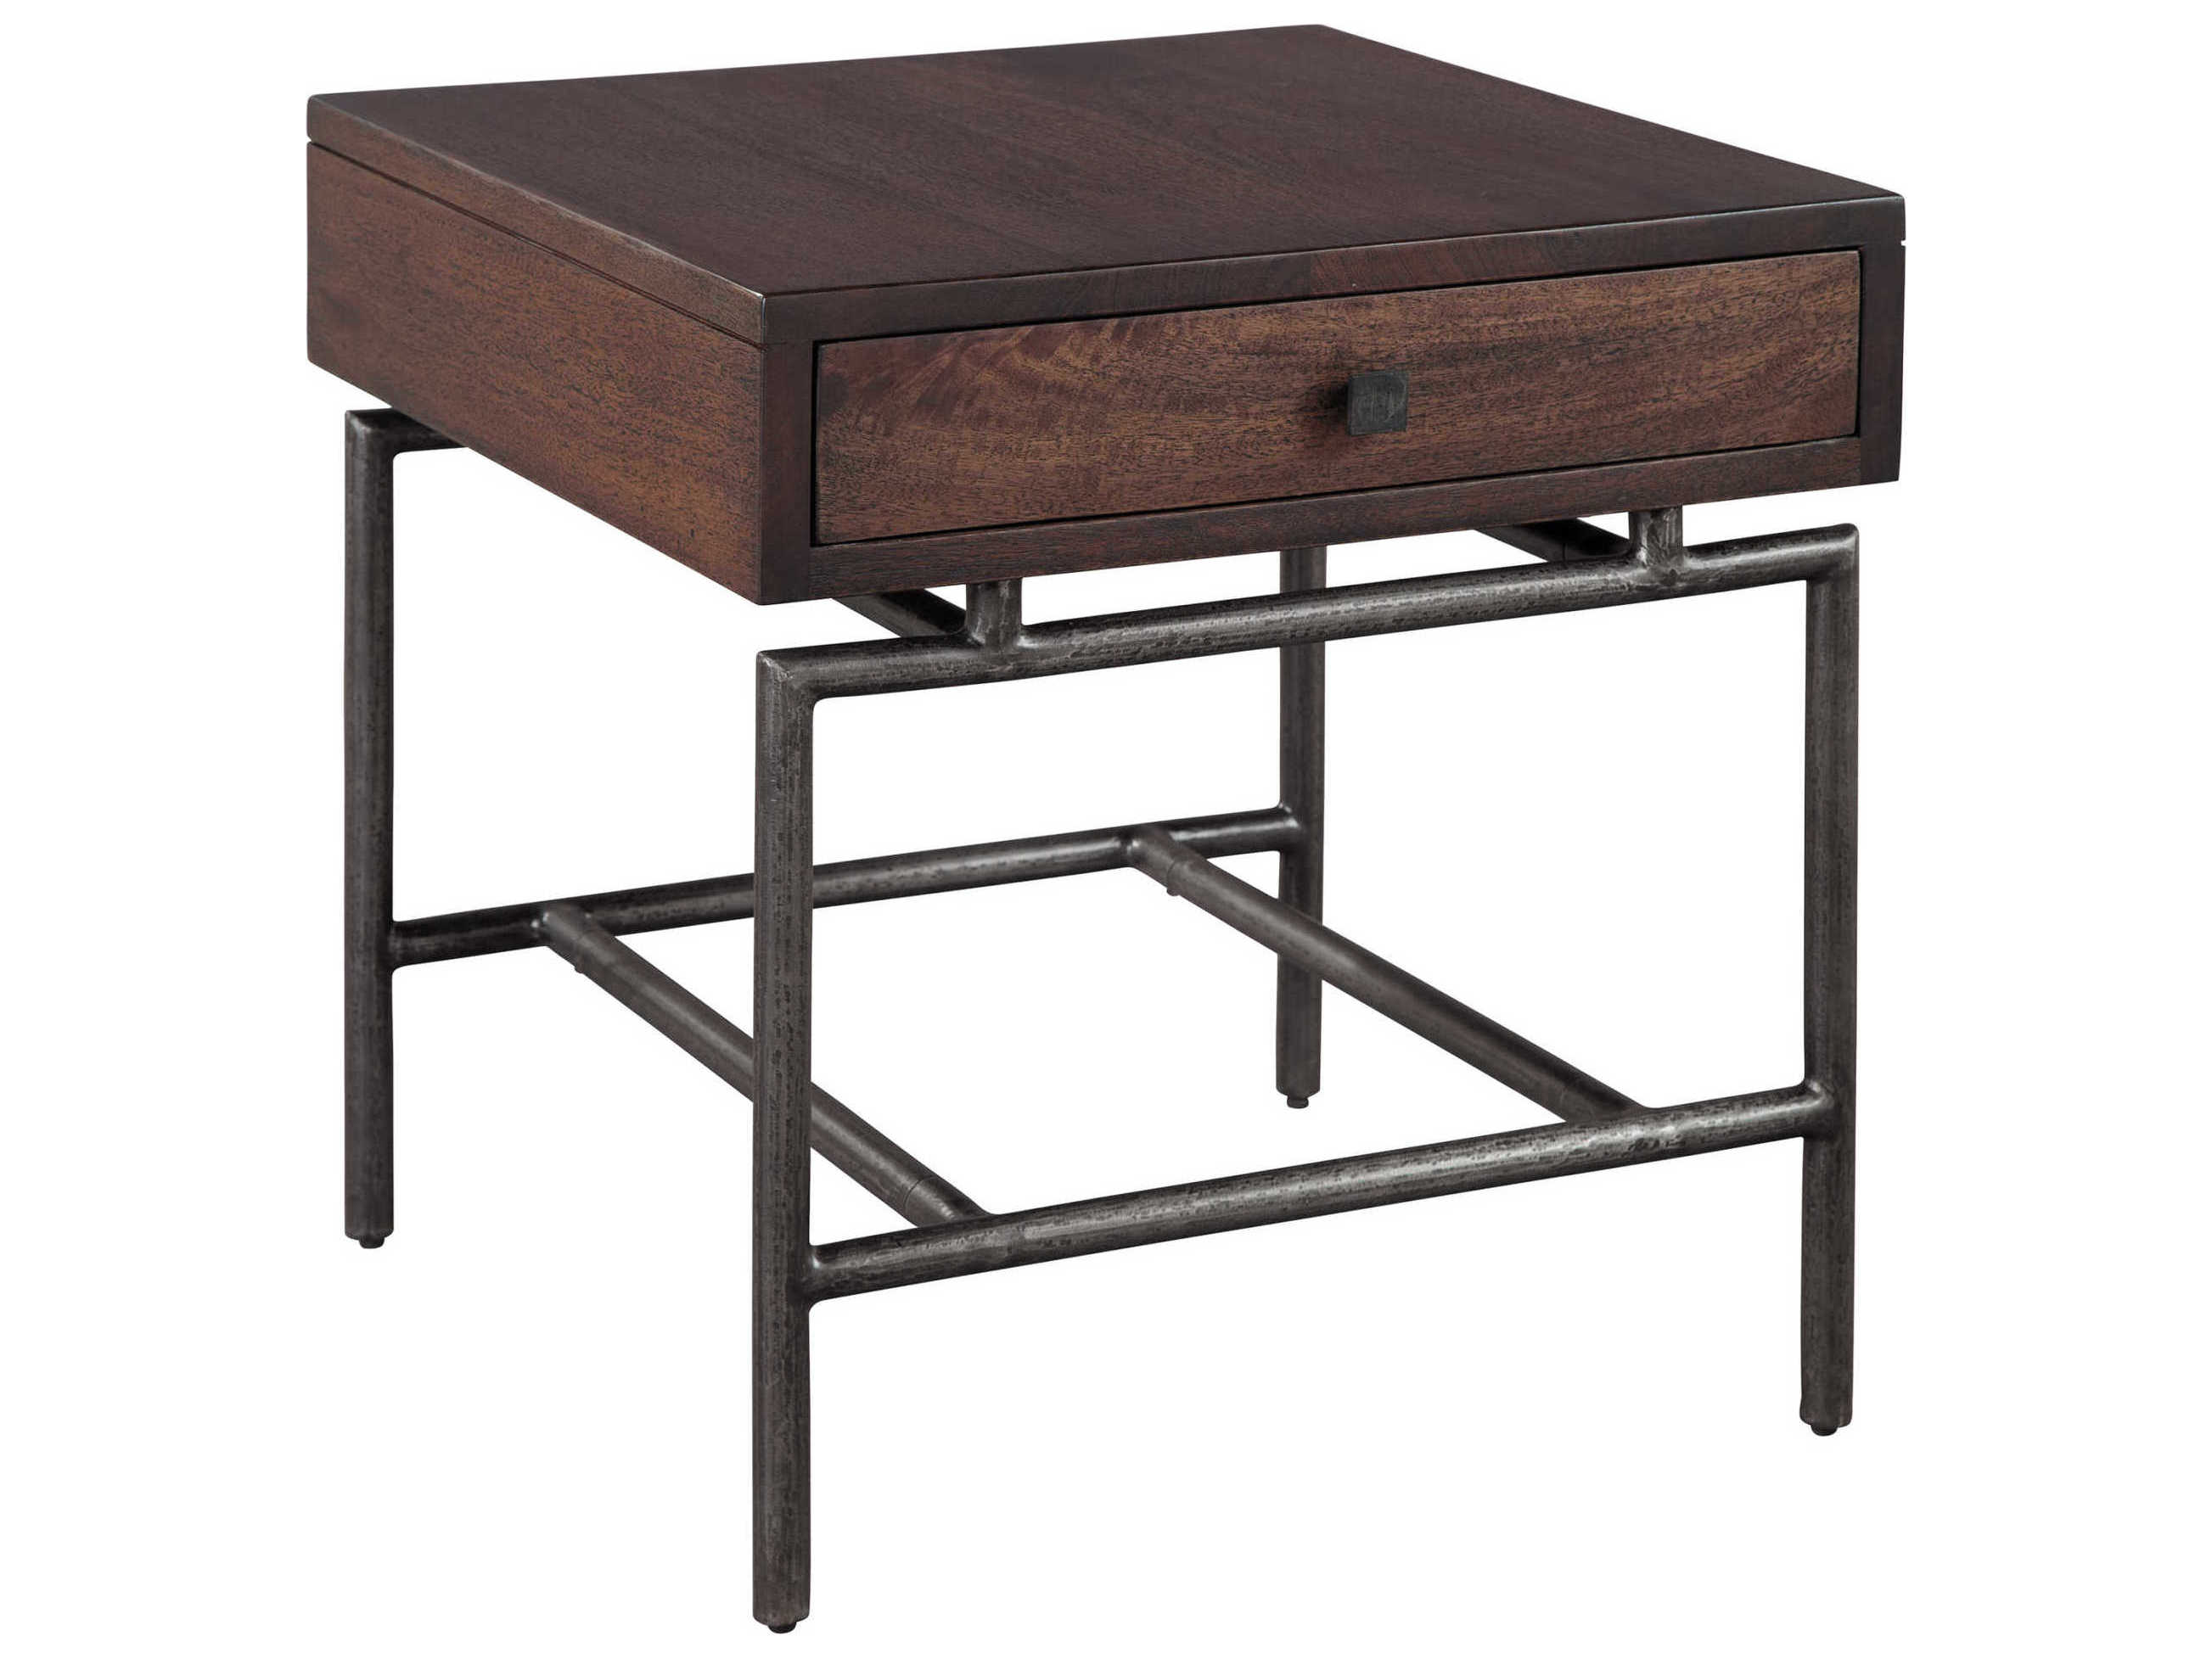 Hekman Accents Special Reserve 24 Wide Square End Table Hk24203